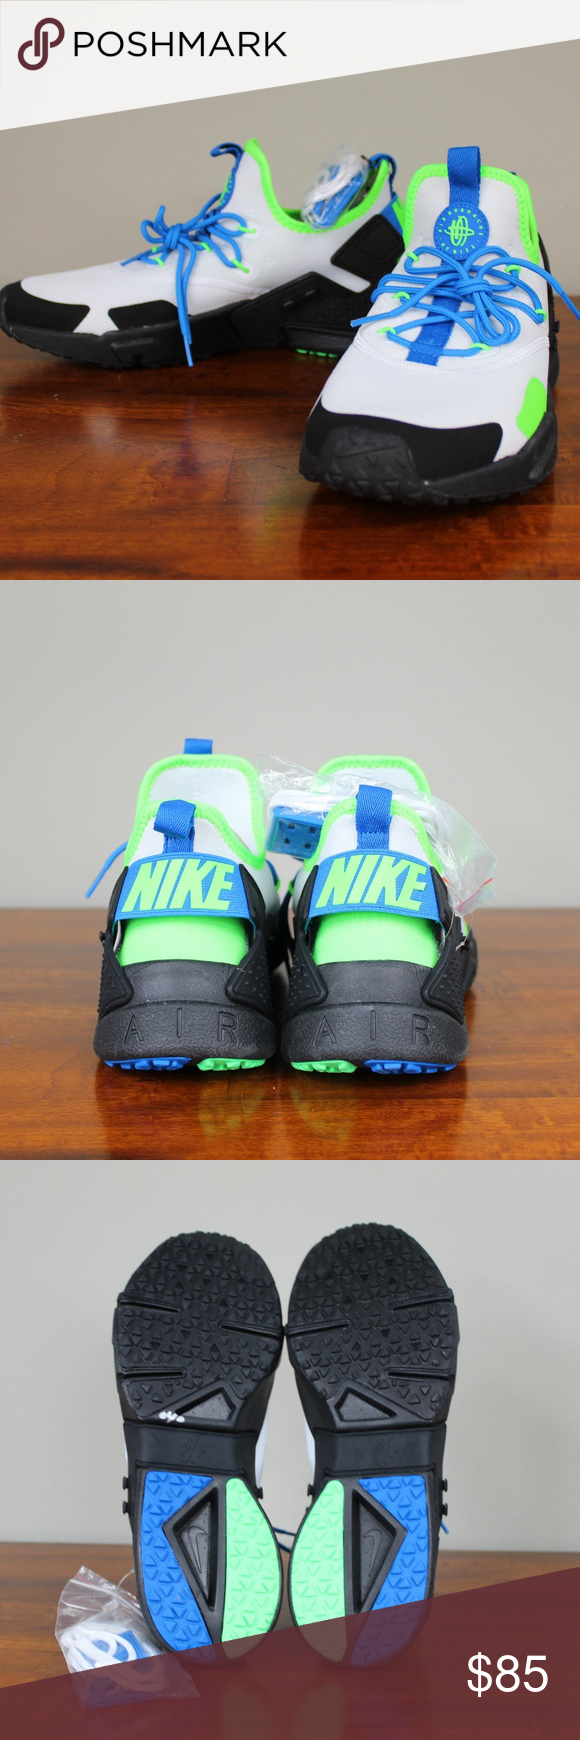 uk availability a85be 0c6f4 No rips or tears. No Stains. Smoke free. Ships carefully packaged and boxed  immediately. Nike Air Huarache Drift Scream Green AH7334 102 Men Size 9.5  ...